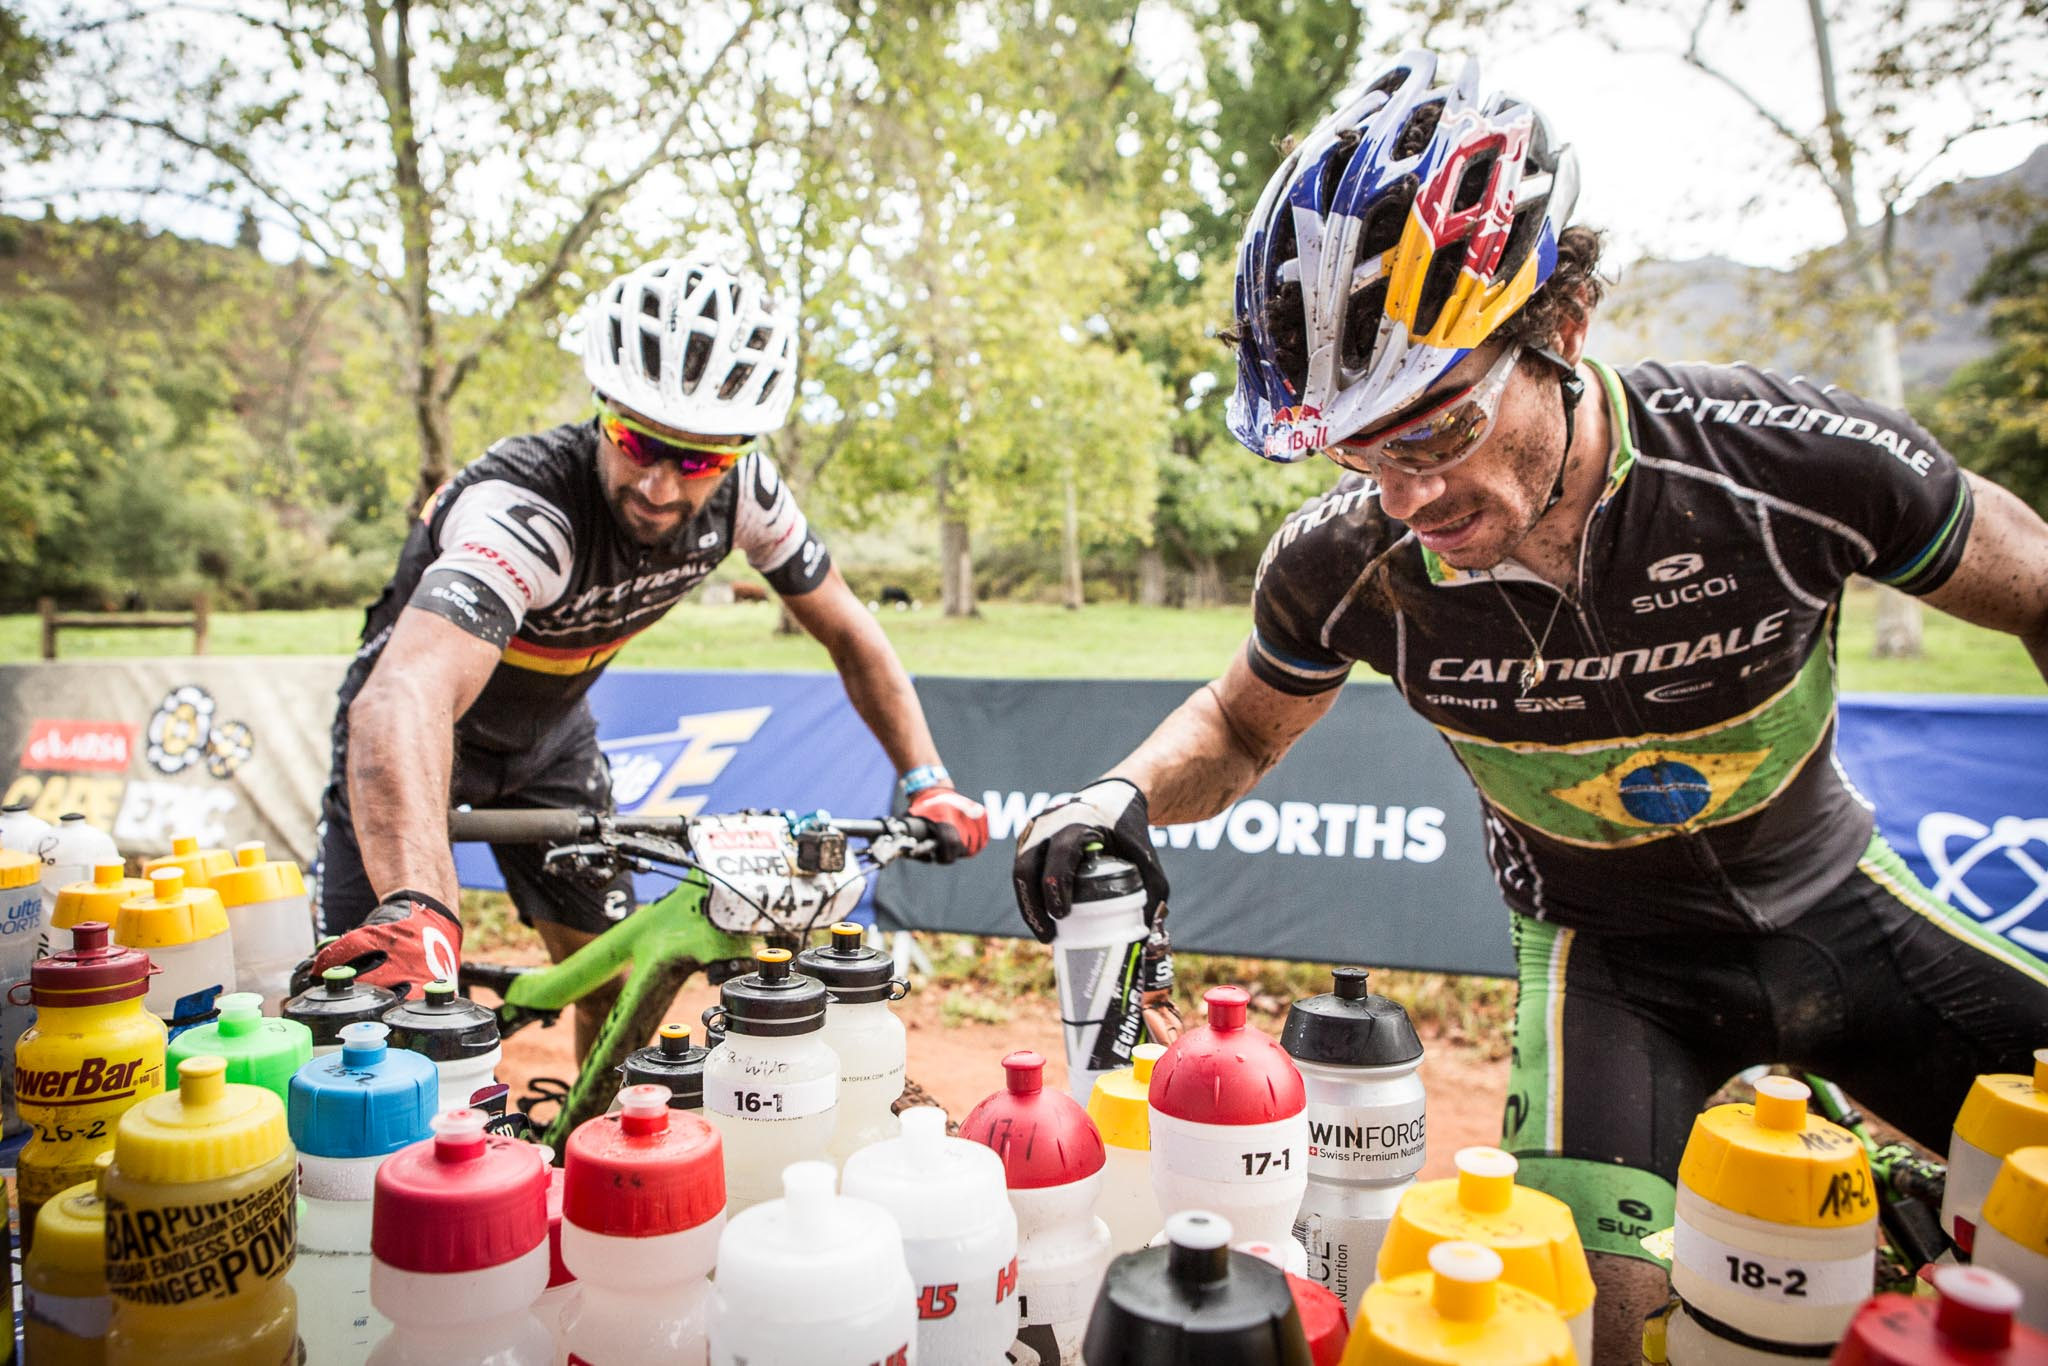 Manuel Fumic and Henrique Avancini of Team Cannondale Factory Racing take on some liquid during stage 6 of the 2016 Absa Cape Epic Mountain Bike stage race from Boschendal in Stellenbosch, South Africa on the 19th March 2015 Photo by Nick Muzik/Cape Epic/SPORTZPICS PLEASE ENSURE THE APPROPRIATE CREDIT IS GIVEN TO THE PHOTOGRAPHER AND SPORTZPICS ALONG WITH THE ABSA CAPE EPIC ace2016